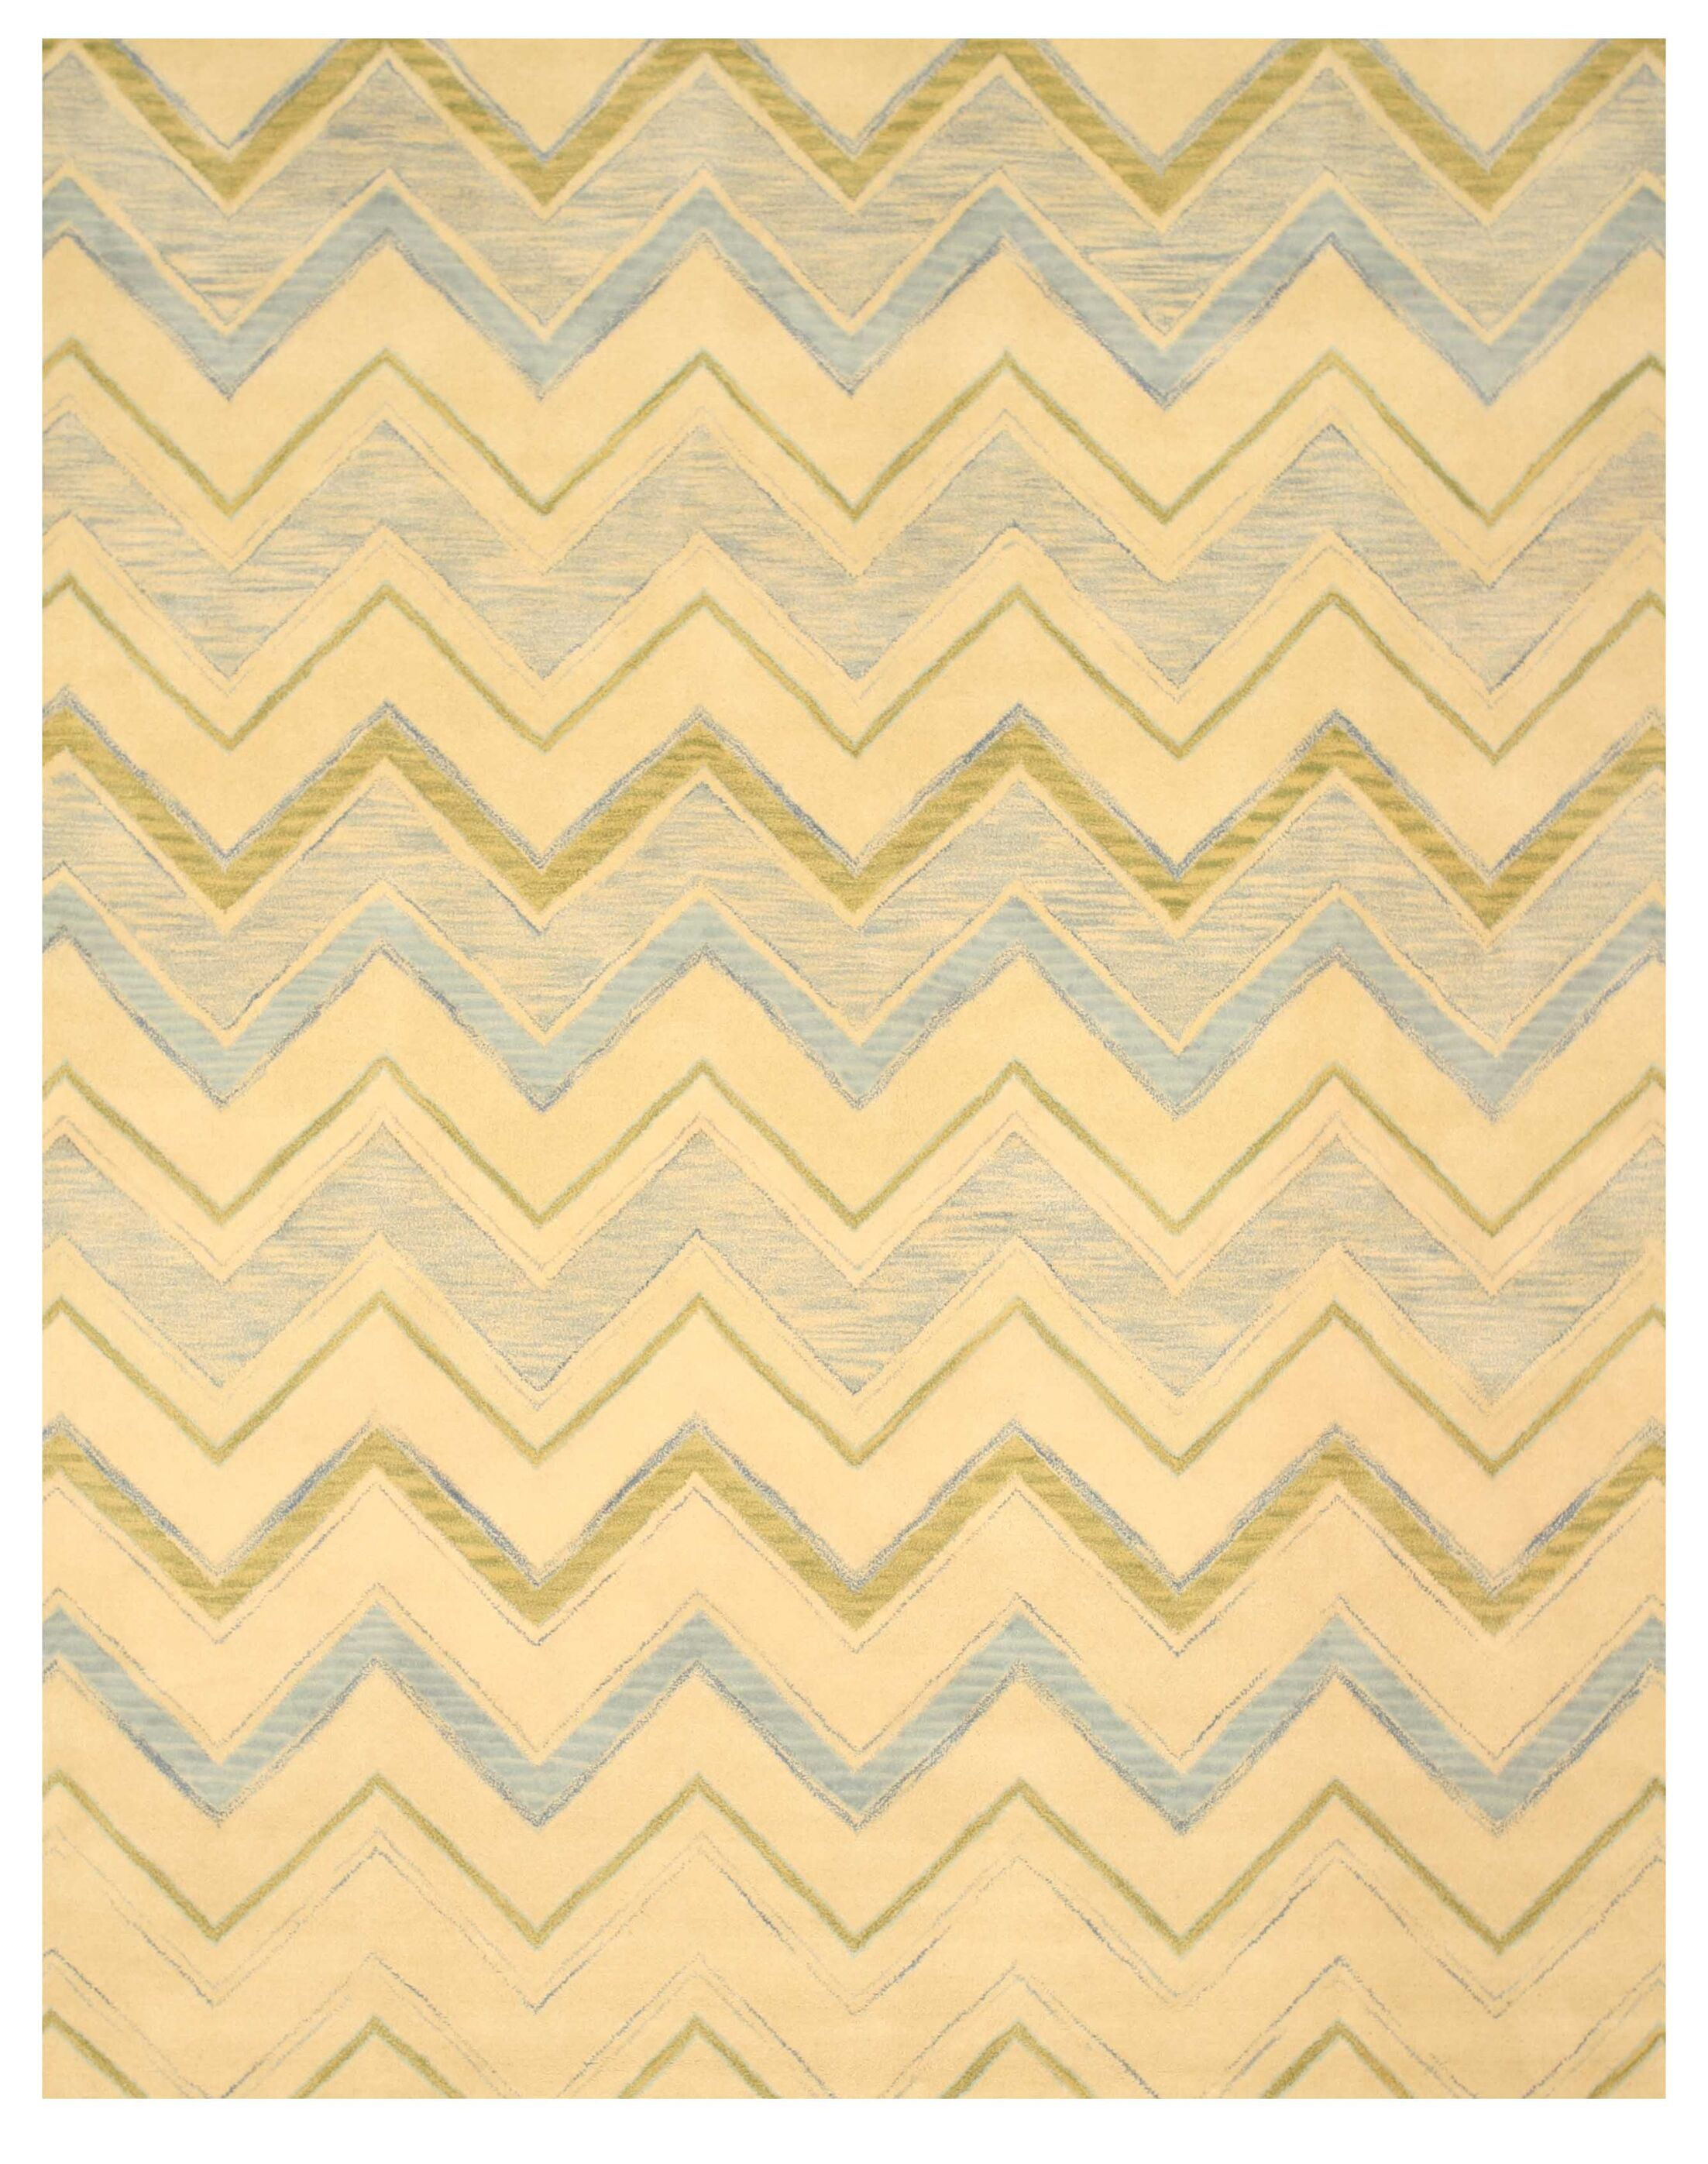 Ladd Hand-Tufted Ivory Area Rug Rug Size: Rectangle 5' x 8'